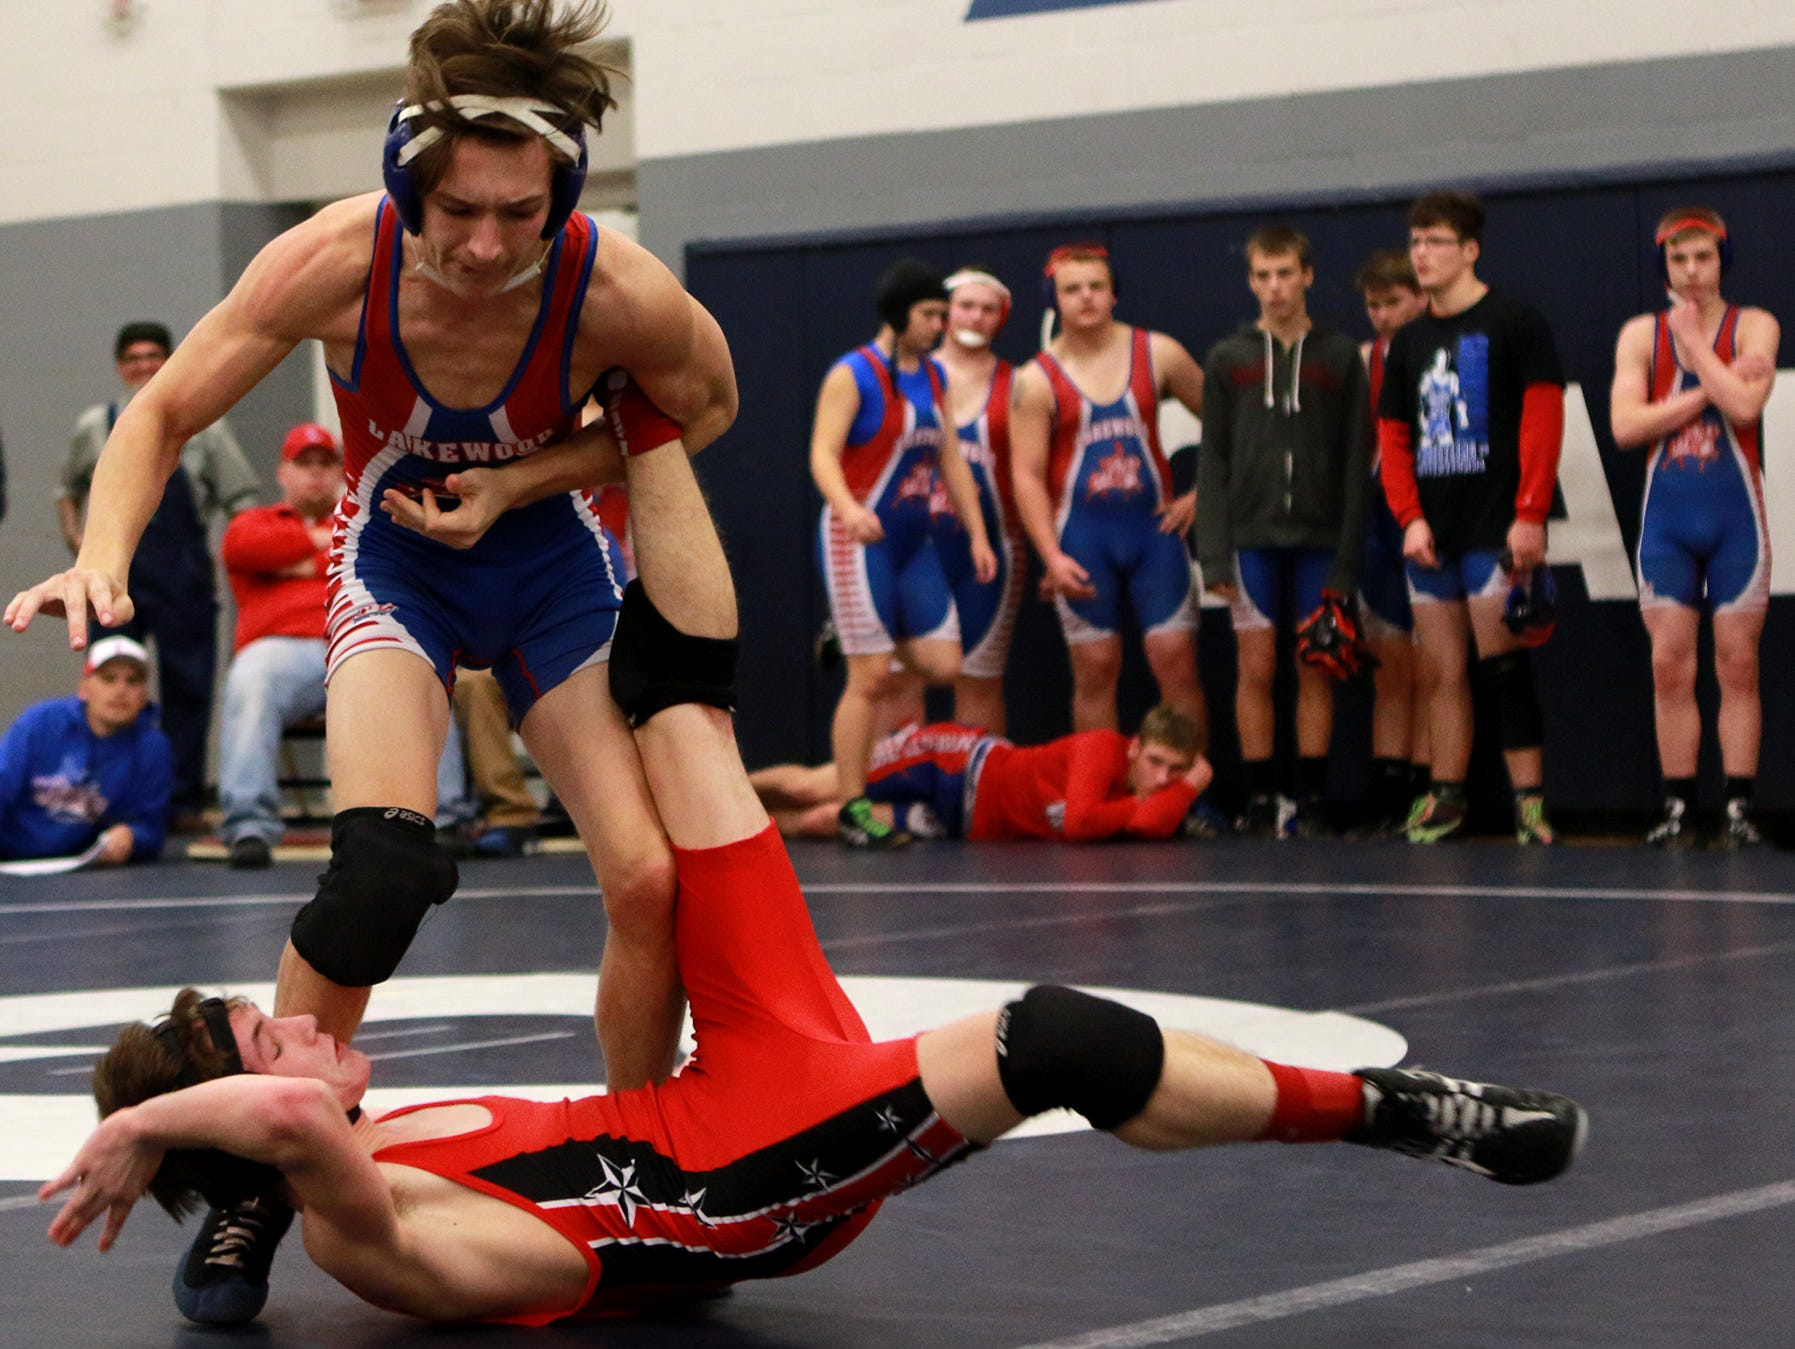 Ray Huber of Lakewood throws Matt Kuhn of Crooksville down during the Granville season opener. Huber wrestled in the 113 weight class.